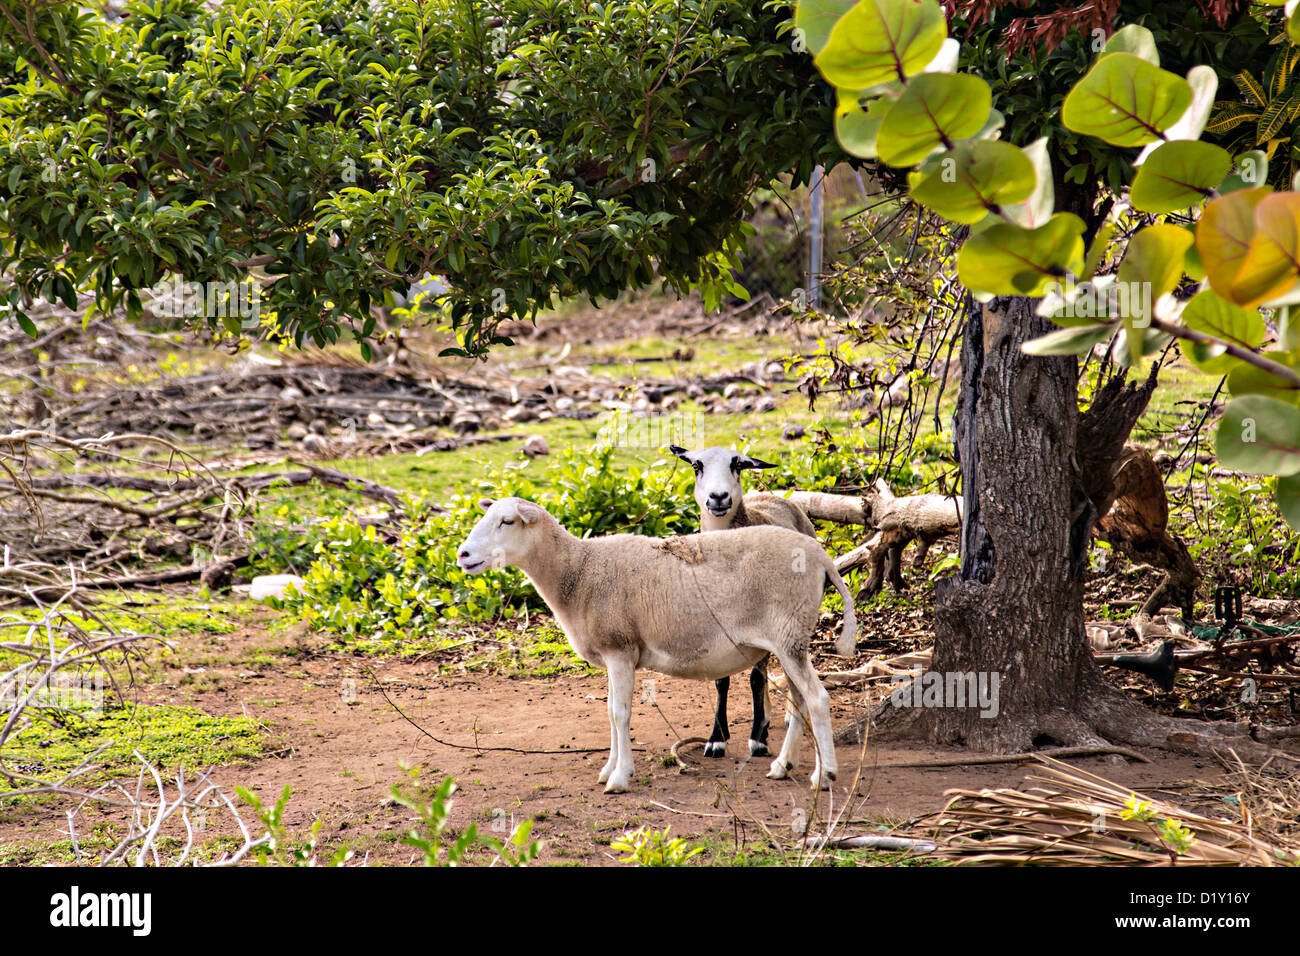 Boer goats Dunmore Town, Harbour Island, The Bahamas. - Stock Image